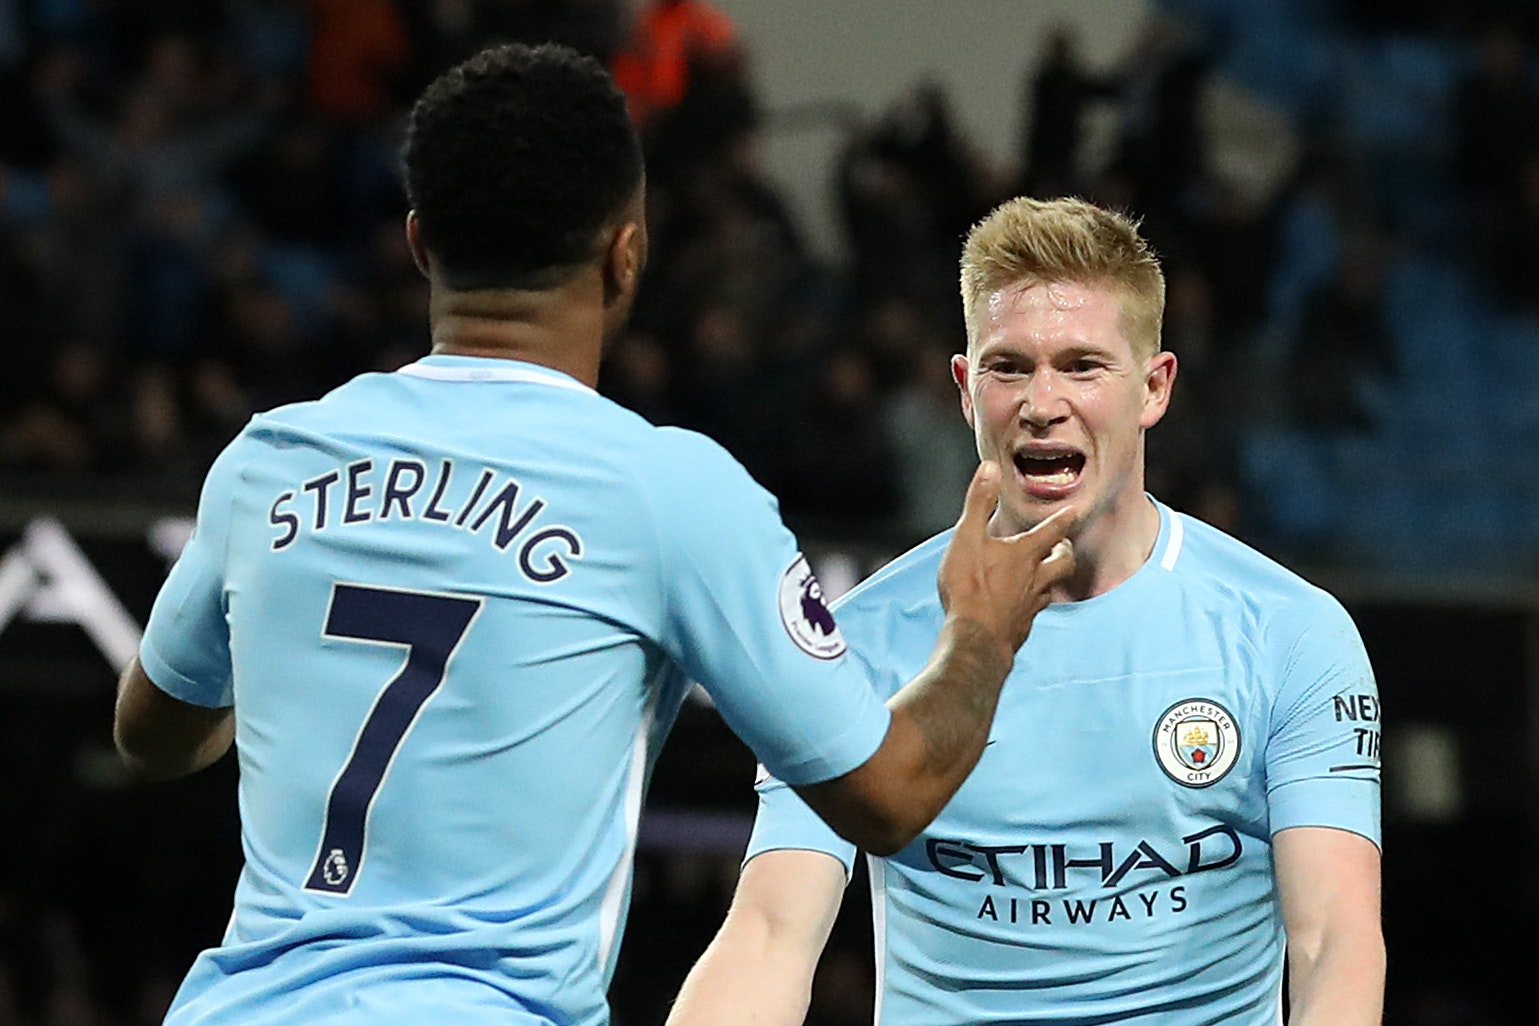 Kevin De Bruyne admits his first impression of Manchester City team-mate was wrong